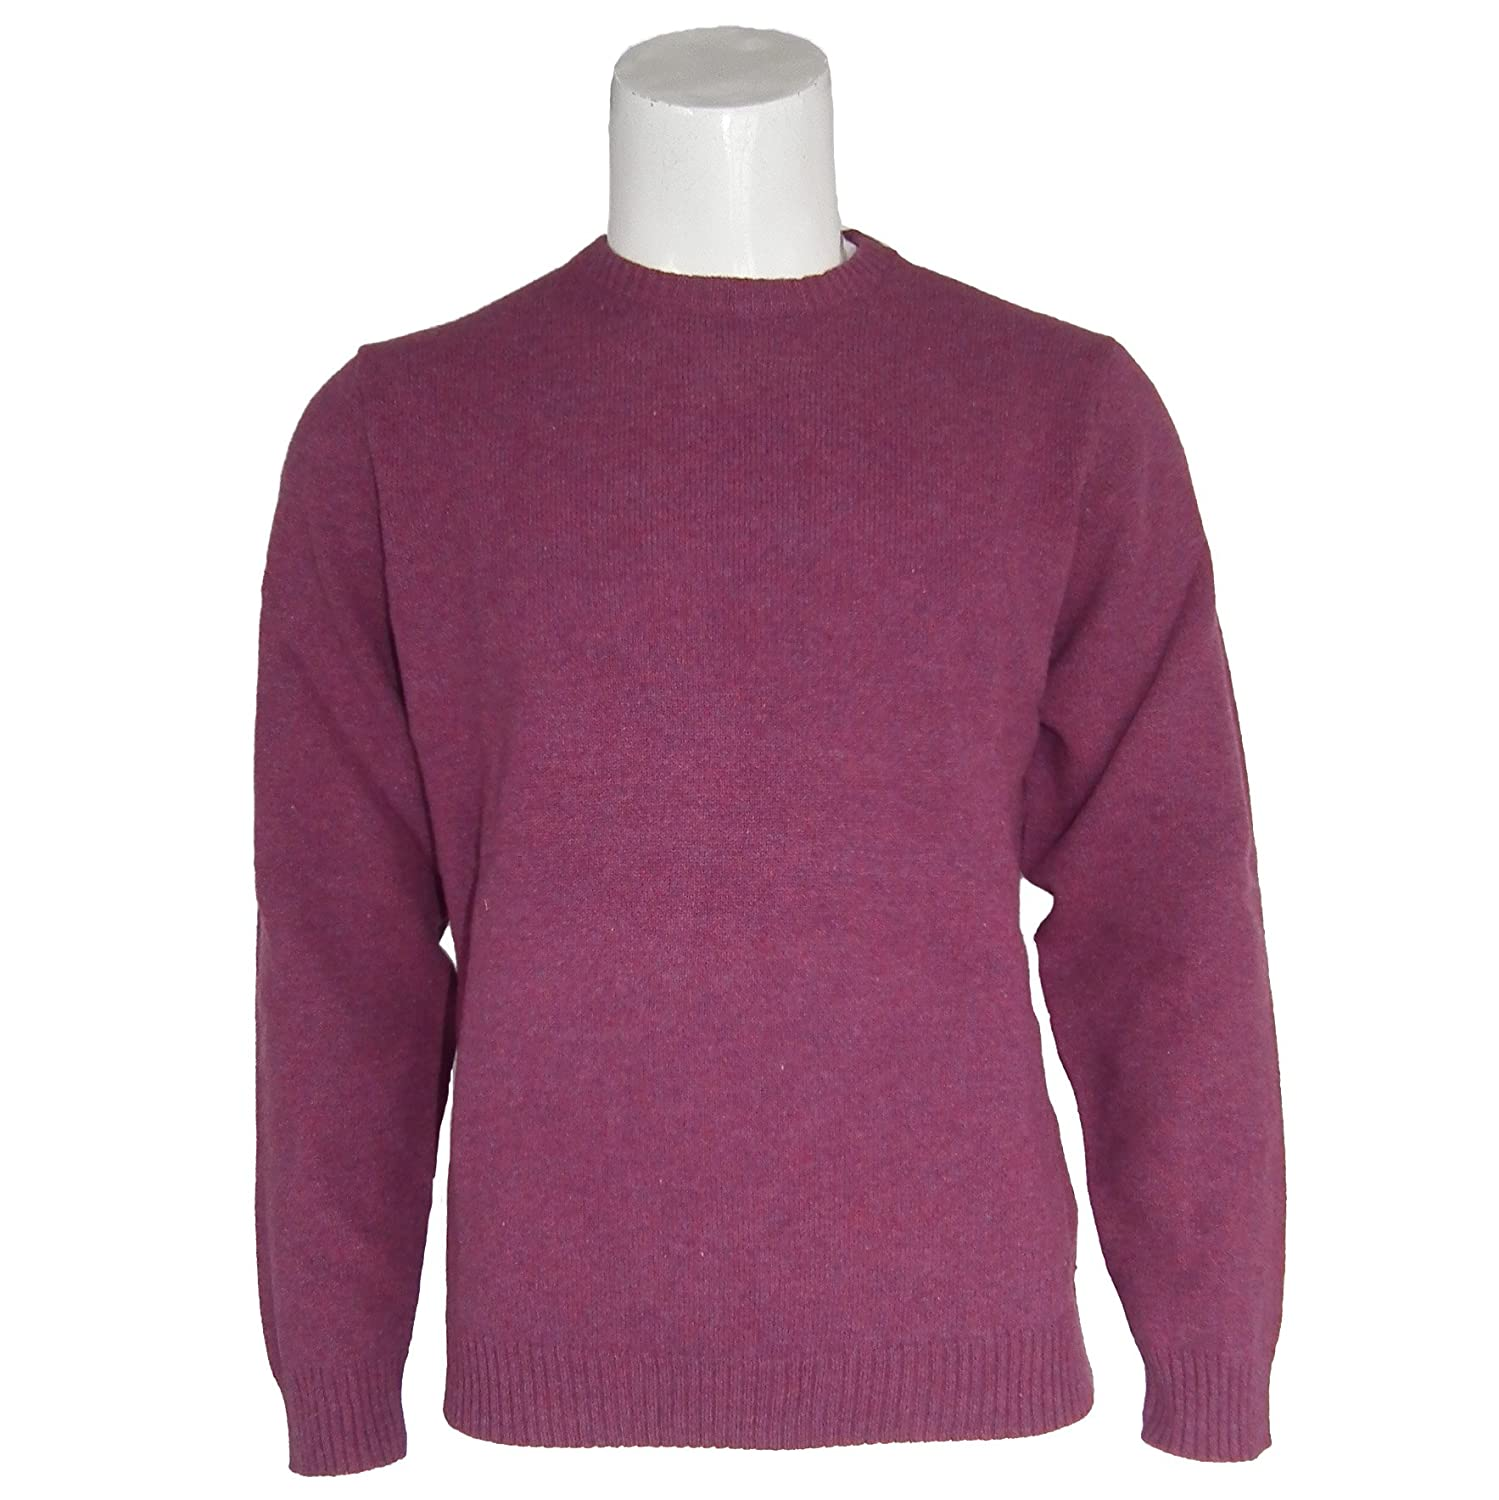 Peter Gribby Autumn Lambswool Crew Neck Jumper in Raspberry